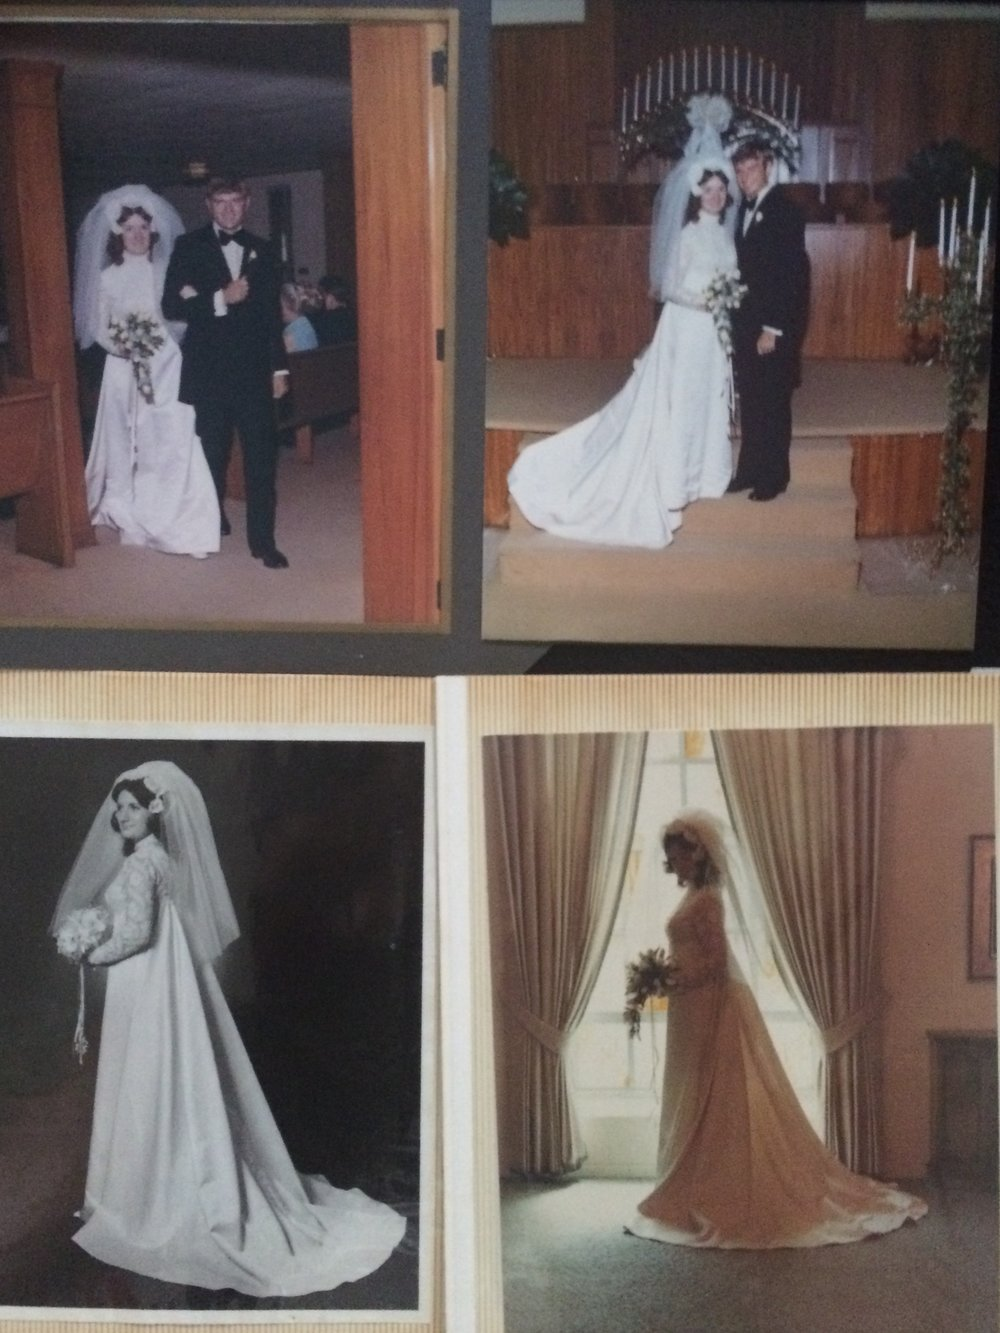 My parents wedding day - August 13, 1972